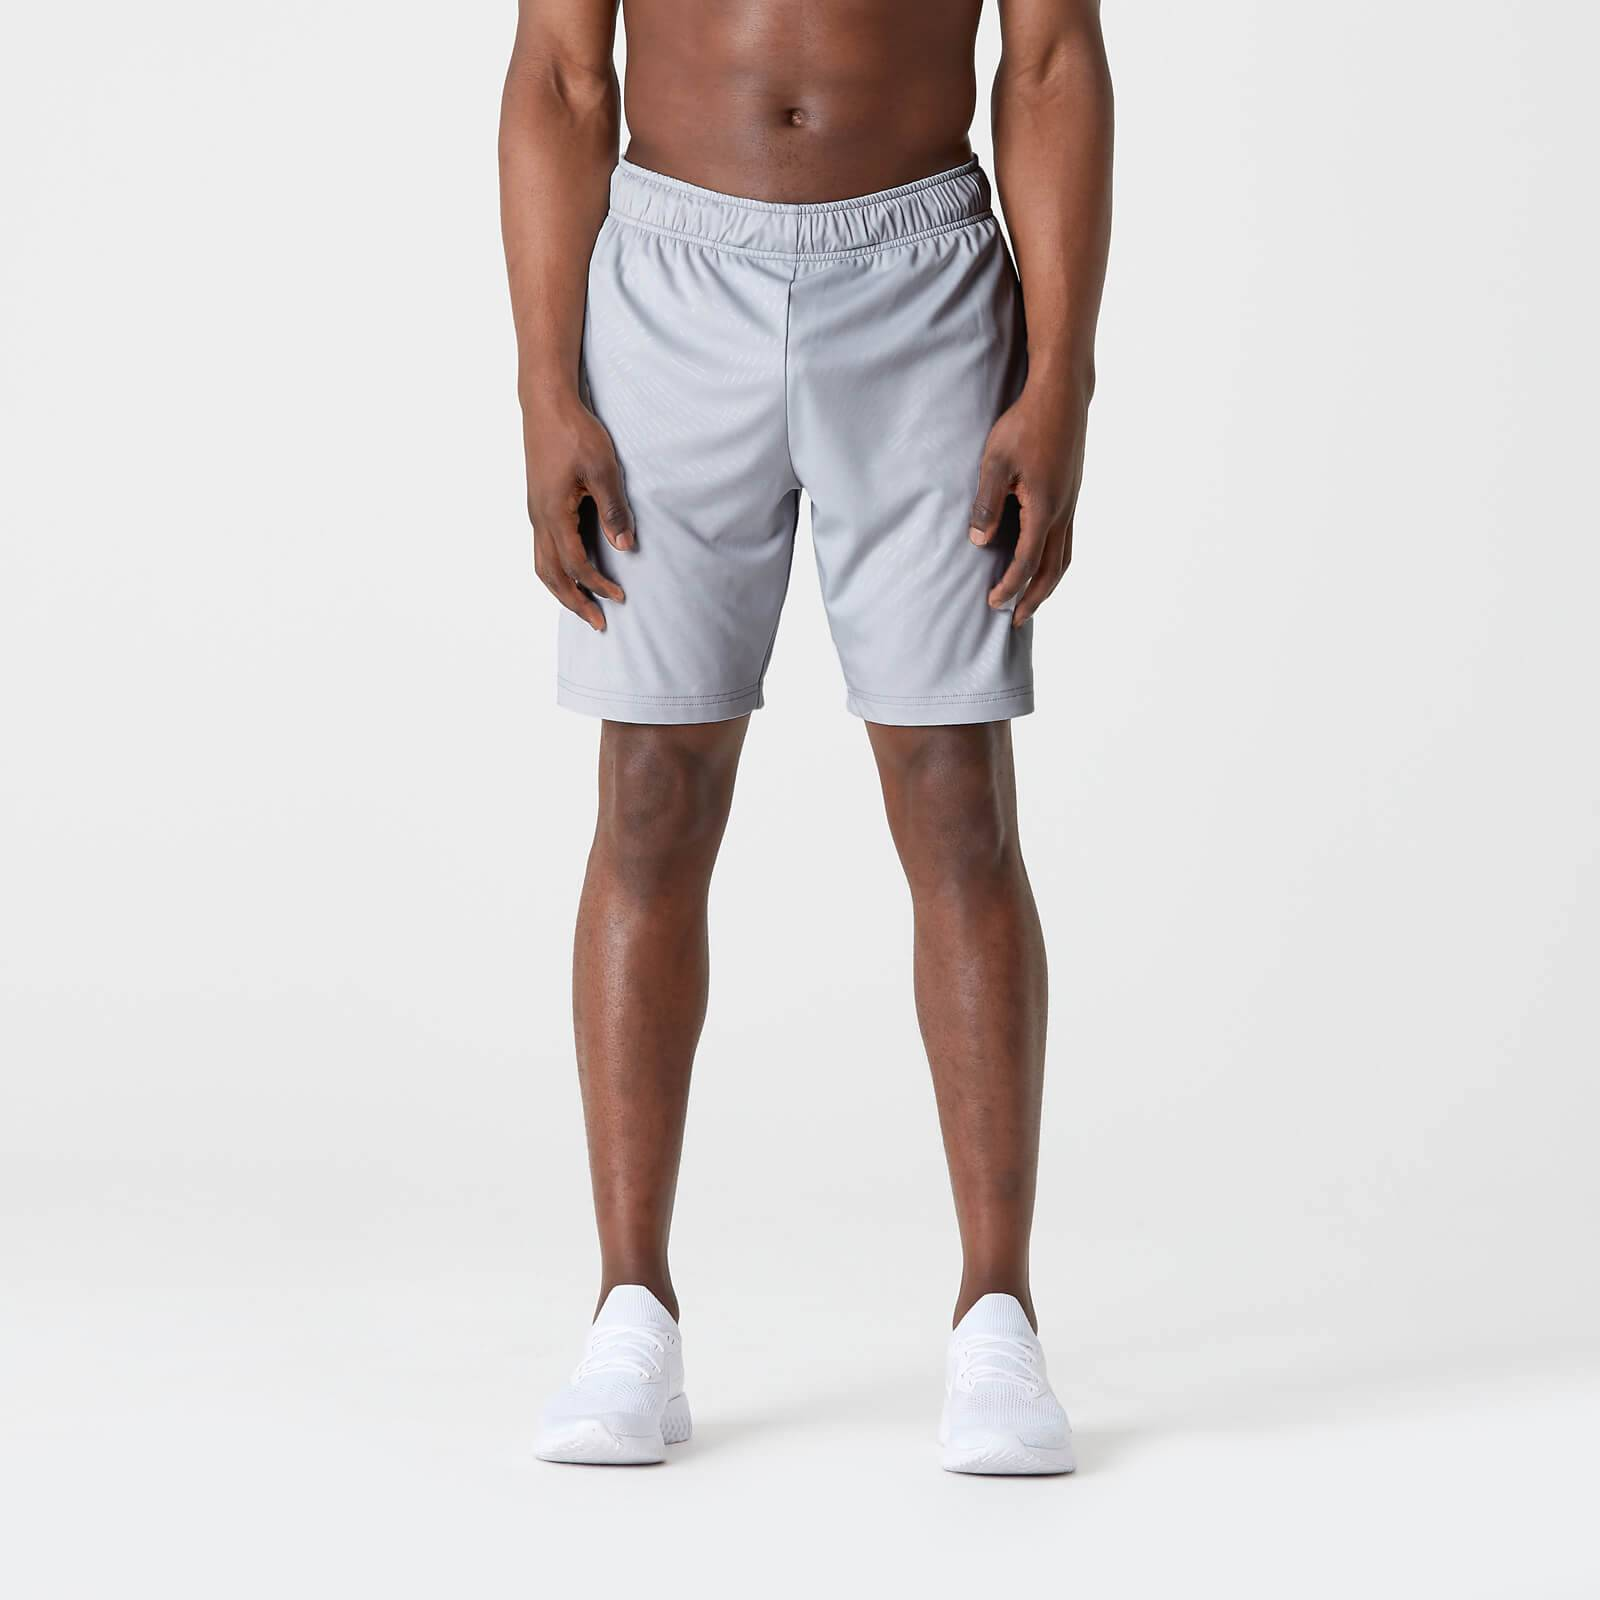 Myprotein Dry-Tech Infinity Shorts - Silver - M - Silver